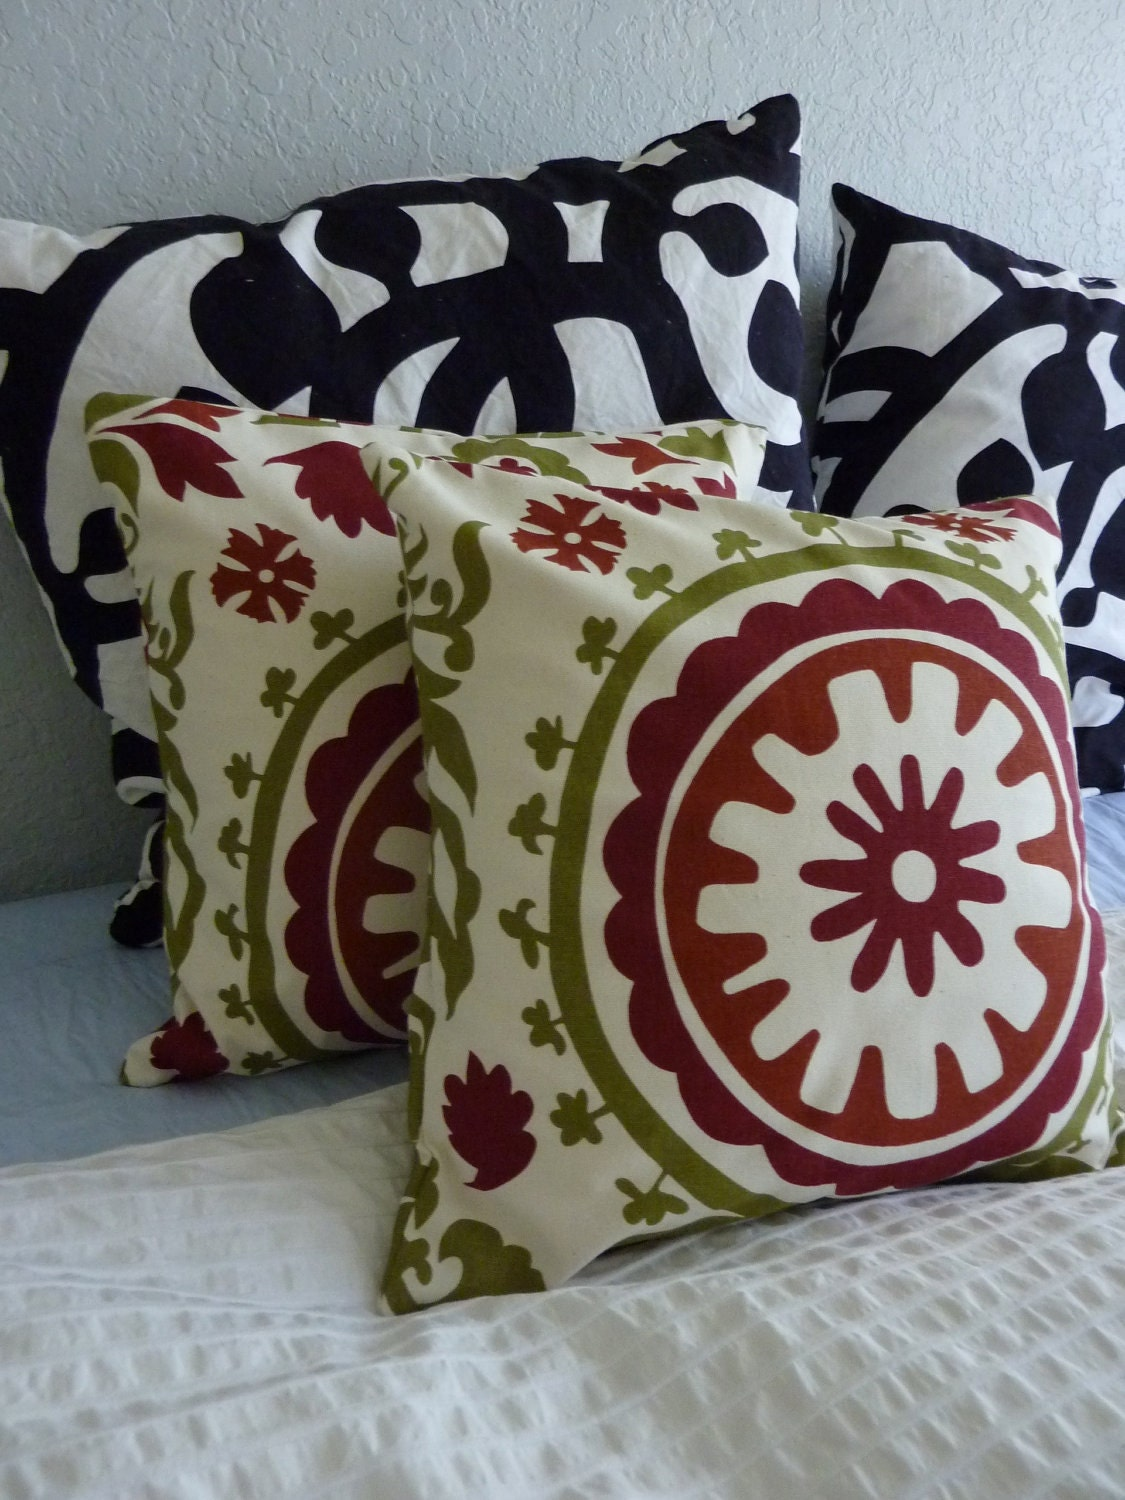 Decorative Pillows Cover- Premier Prints Suzani Autumn/Natural -  TWO 16x16